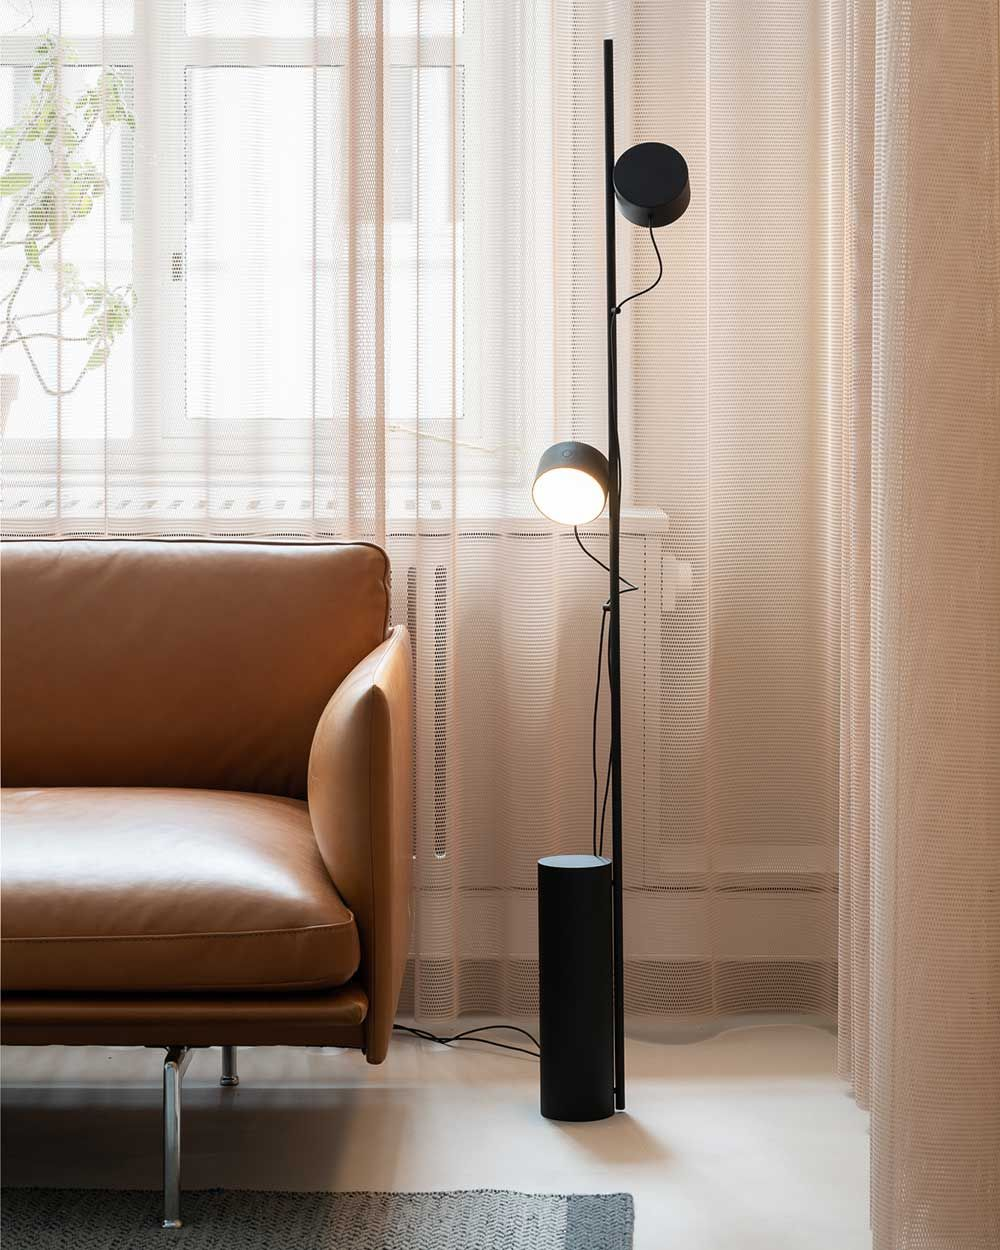 The Post Floor Lamp Is An Innovative Modular Lighting Design With An Archetypal Appearance Graphic Lines And In 2020 Scandinavian Furniture Design Floor Lamp Interior